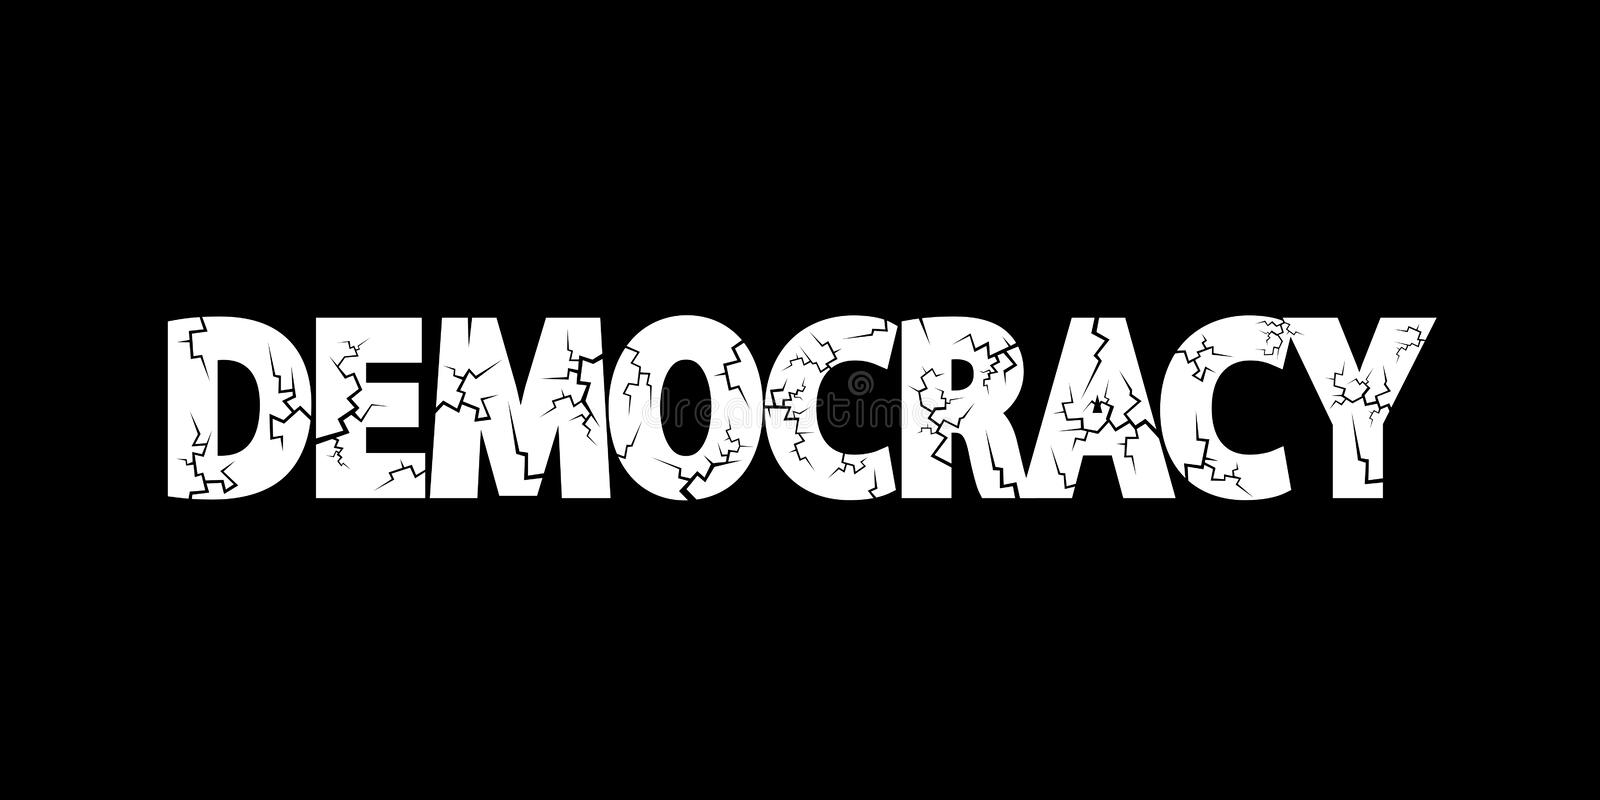 Democracy in danger. Democratic system is deteriorating and worsening. Decay and failure of politics and elections. Vector illustration stock illustration